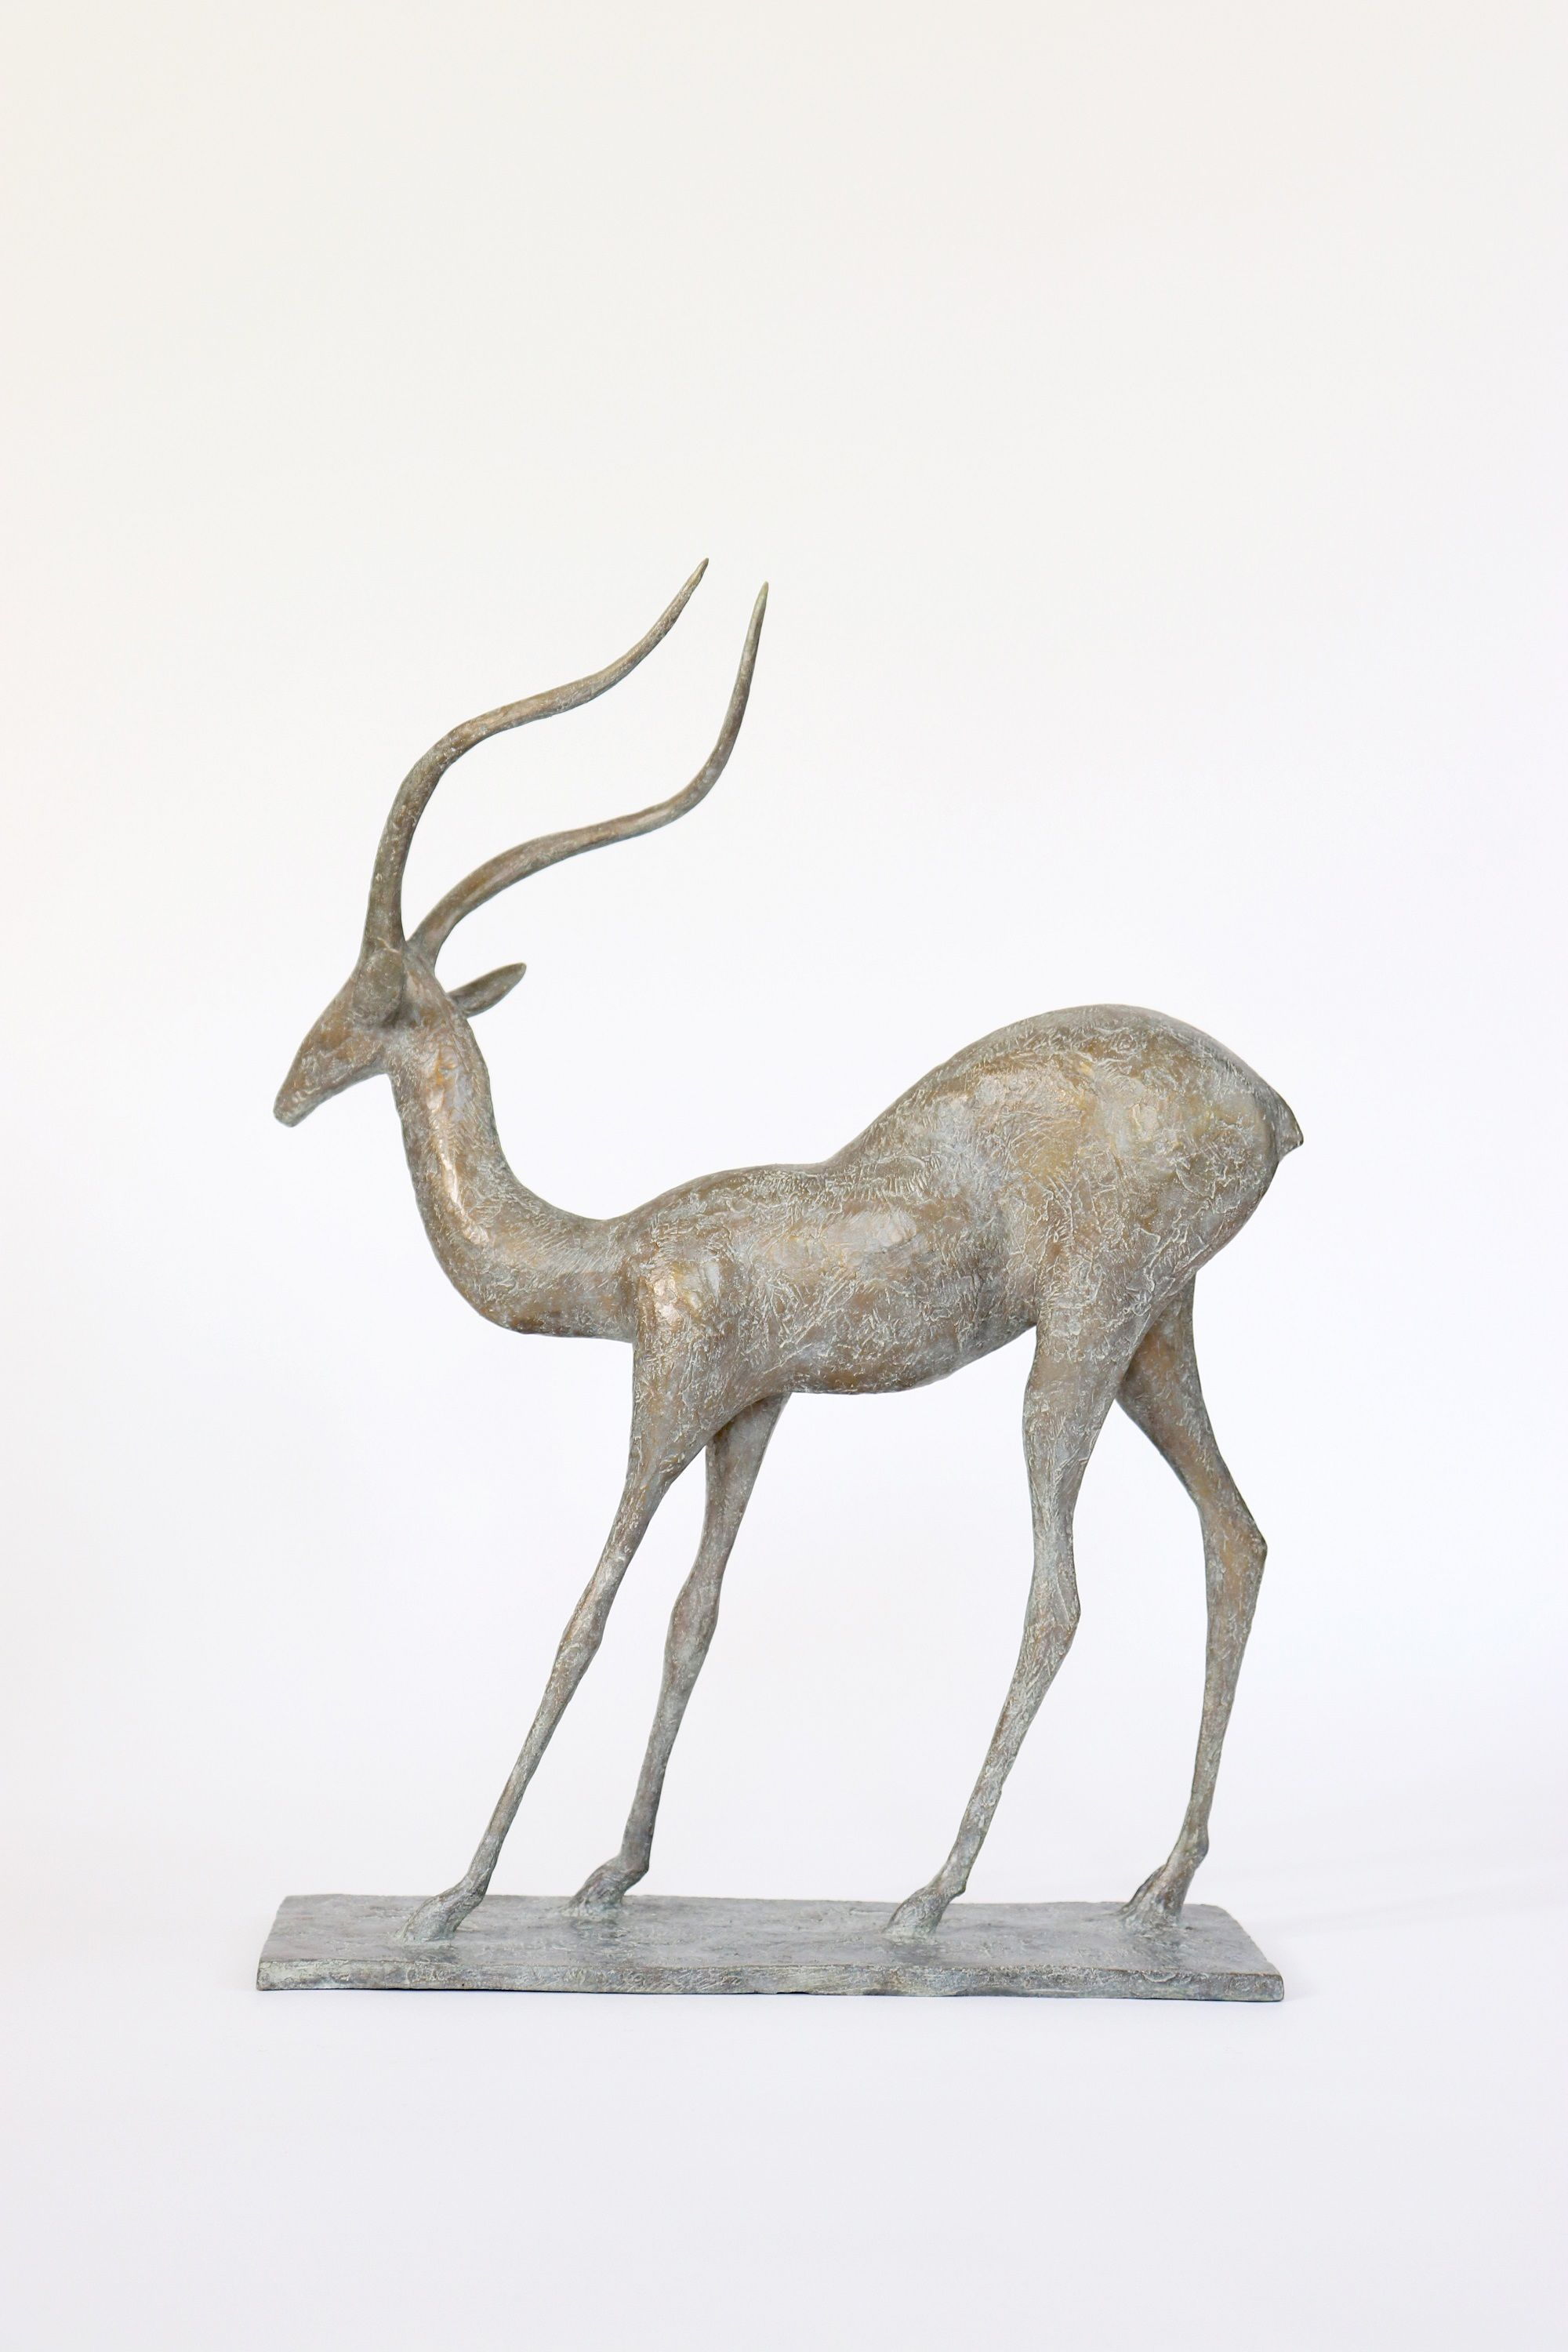 Gazelle III,Pierre Yermia,Sculpture, detail 1